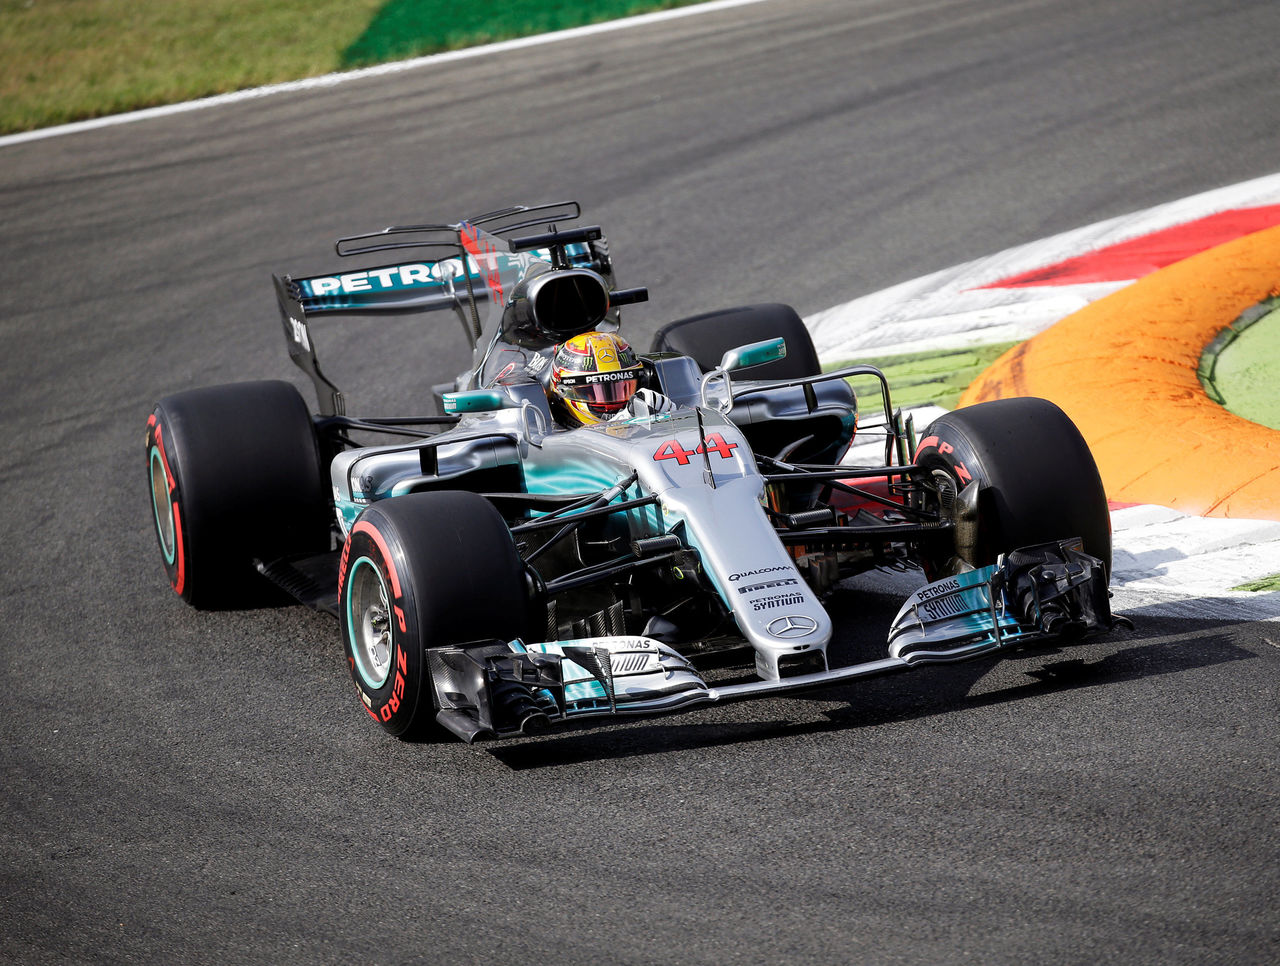 Cropped 2017 09 01t085733z 1789413305 rc1b2887a120 rtrmadp 3 motor f1 italy